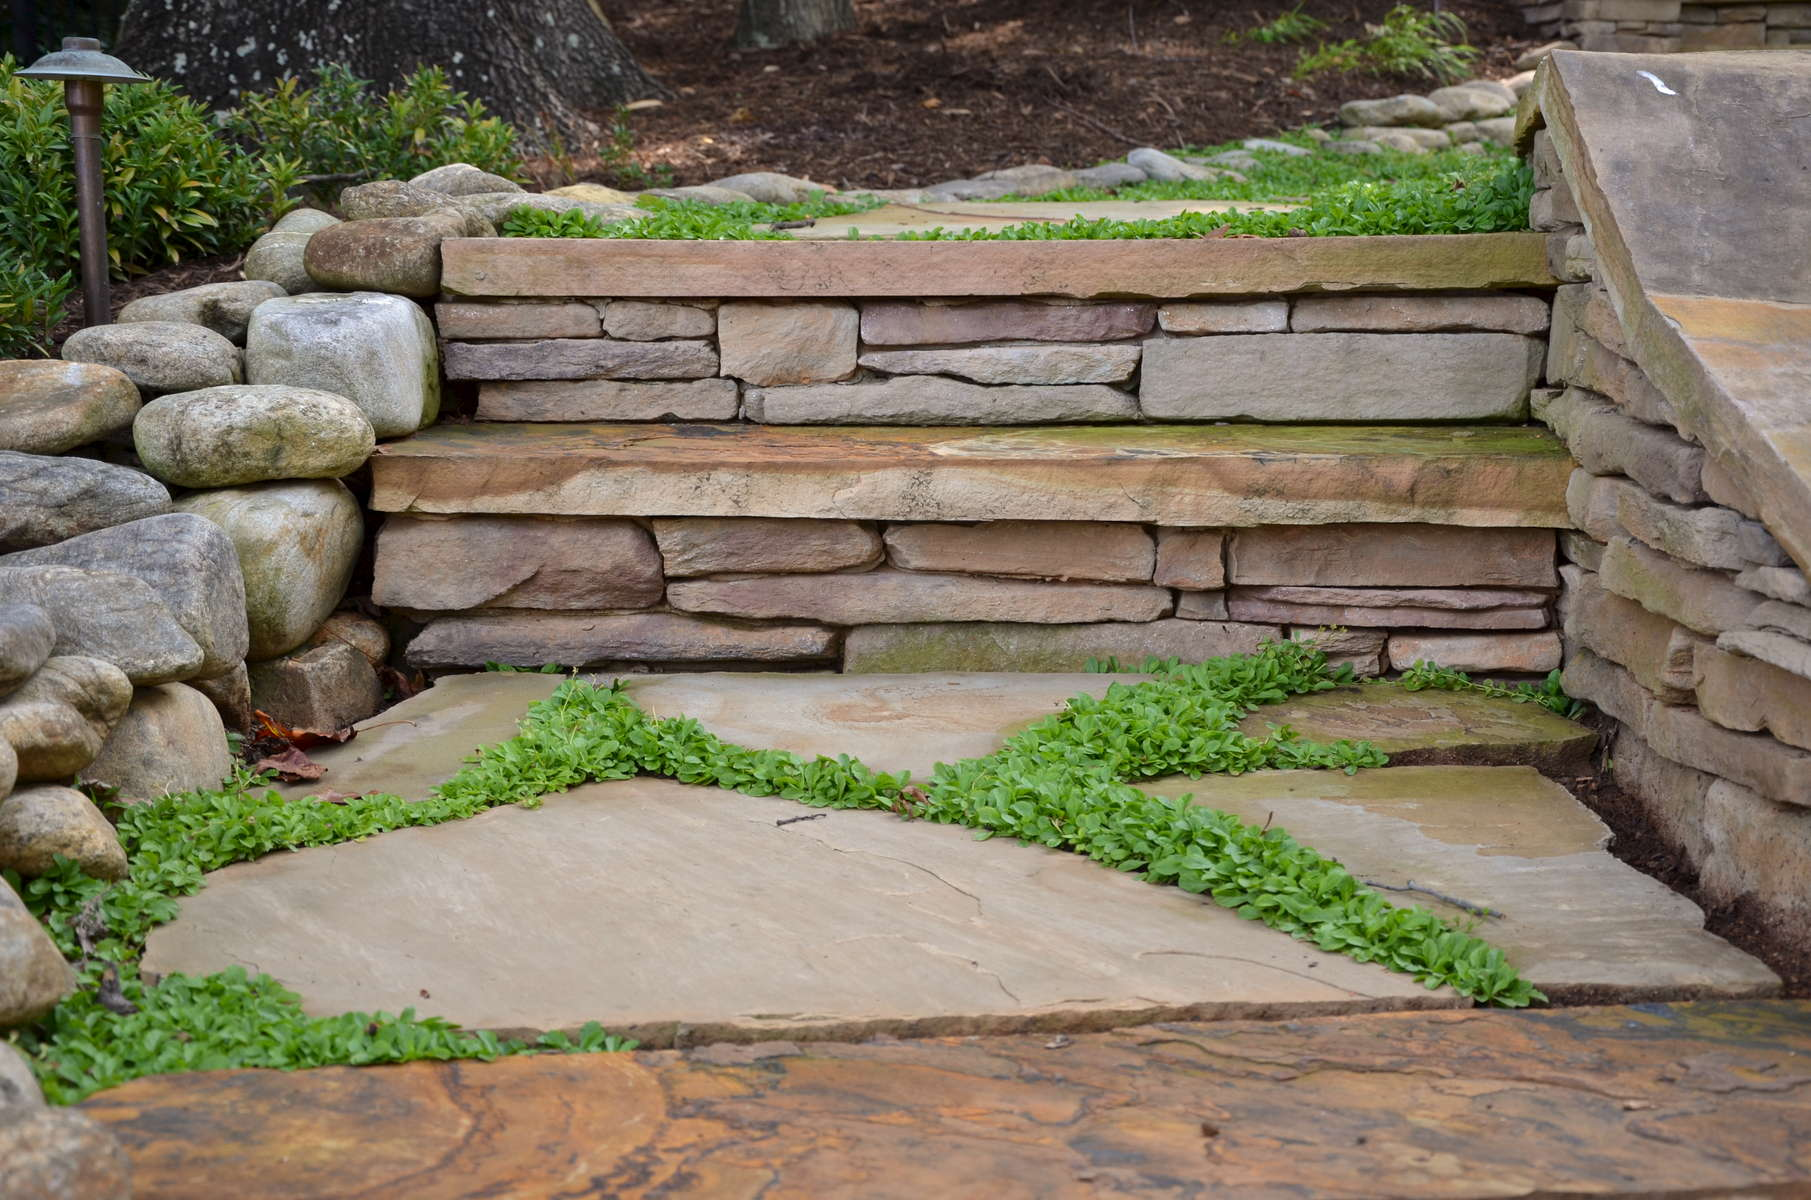 Stone naturally adheres both the site's aesthetics and utility in endleStone naturally adheres both the site's aesthetics and utility in endlessly appealing applications. Battered rubble stone stone walls protect original tree roots and serpentine stone dry creeks channel and diffuse storm water. Boulders edge paths, terminate walls and provide improvisational seating on a sunny afternoon.ssly appealing applications. Battered rubble stone stone walls protect original tree roots and serpentine stone dry creeks channel and diffuse storm water. Boulders edge paths, terminate walls and provide improvisational seating on a sunny afternoon.